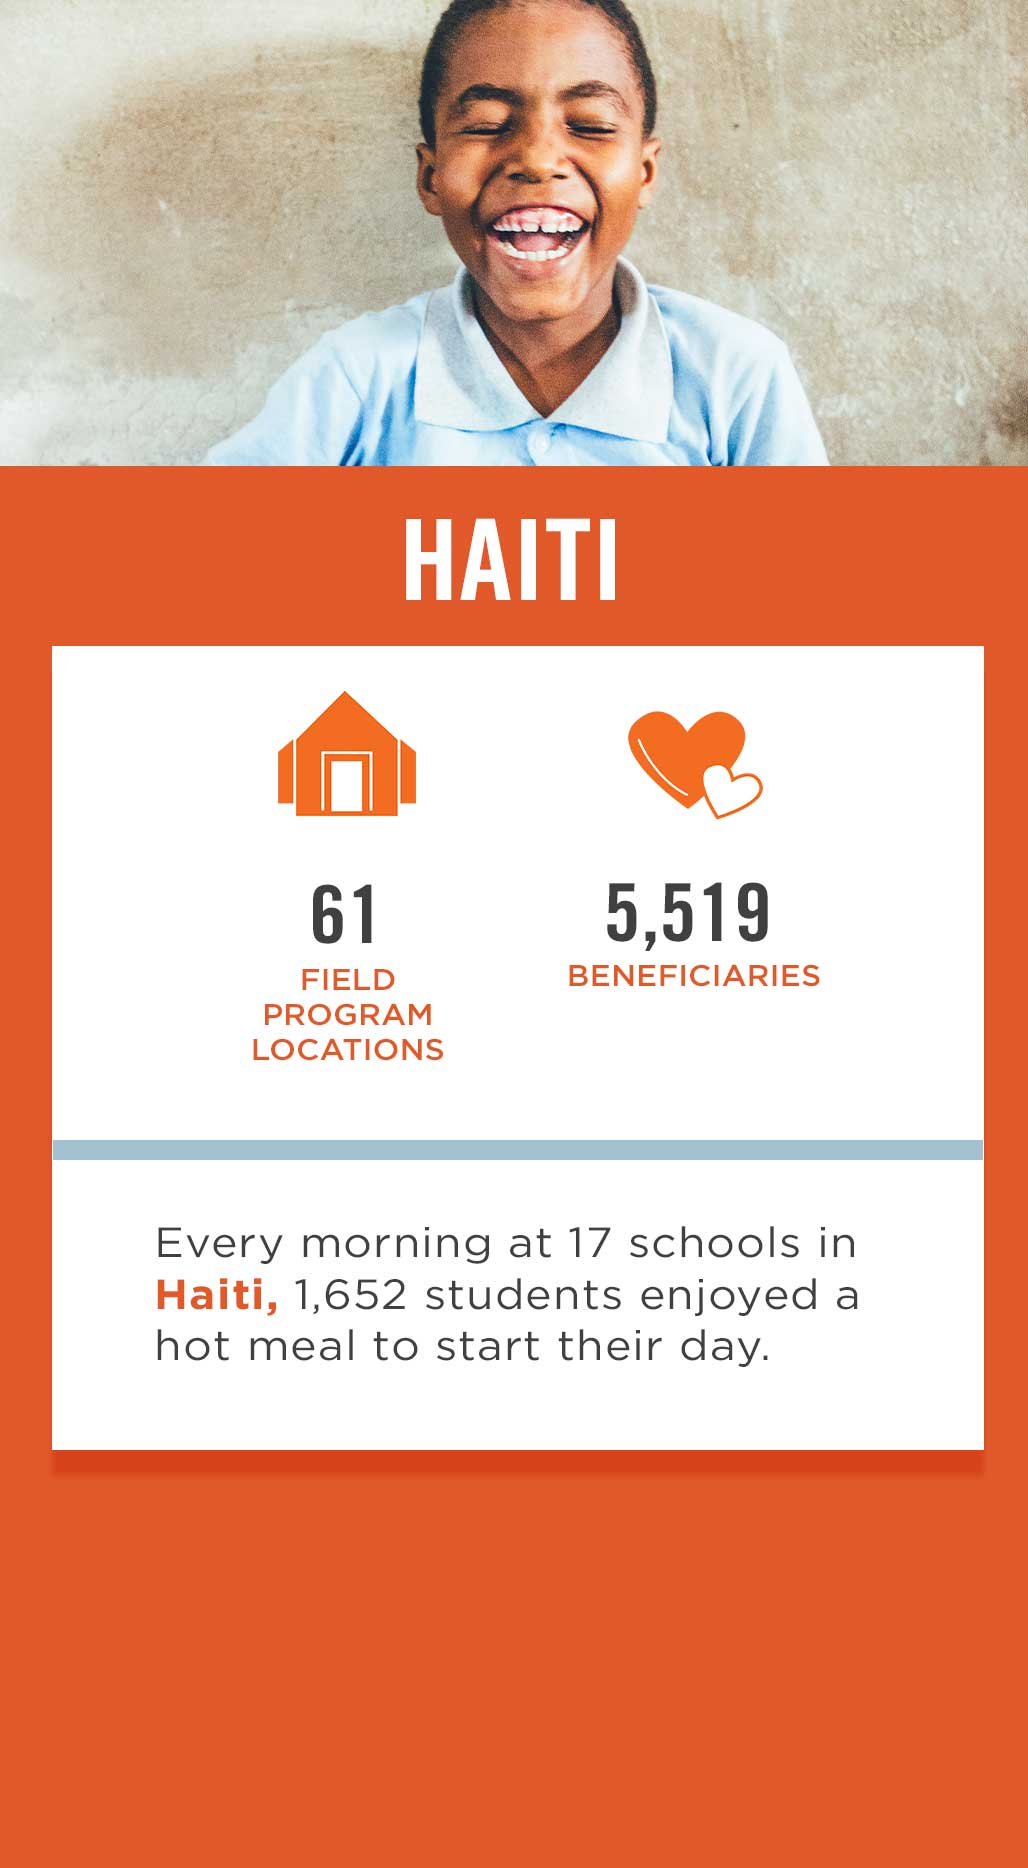 Haiti School Feeding Program